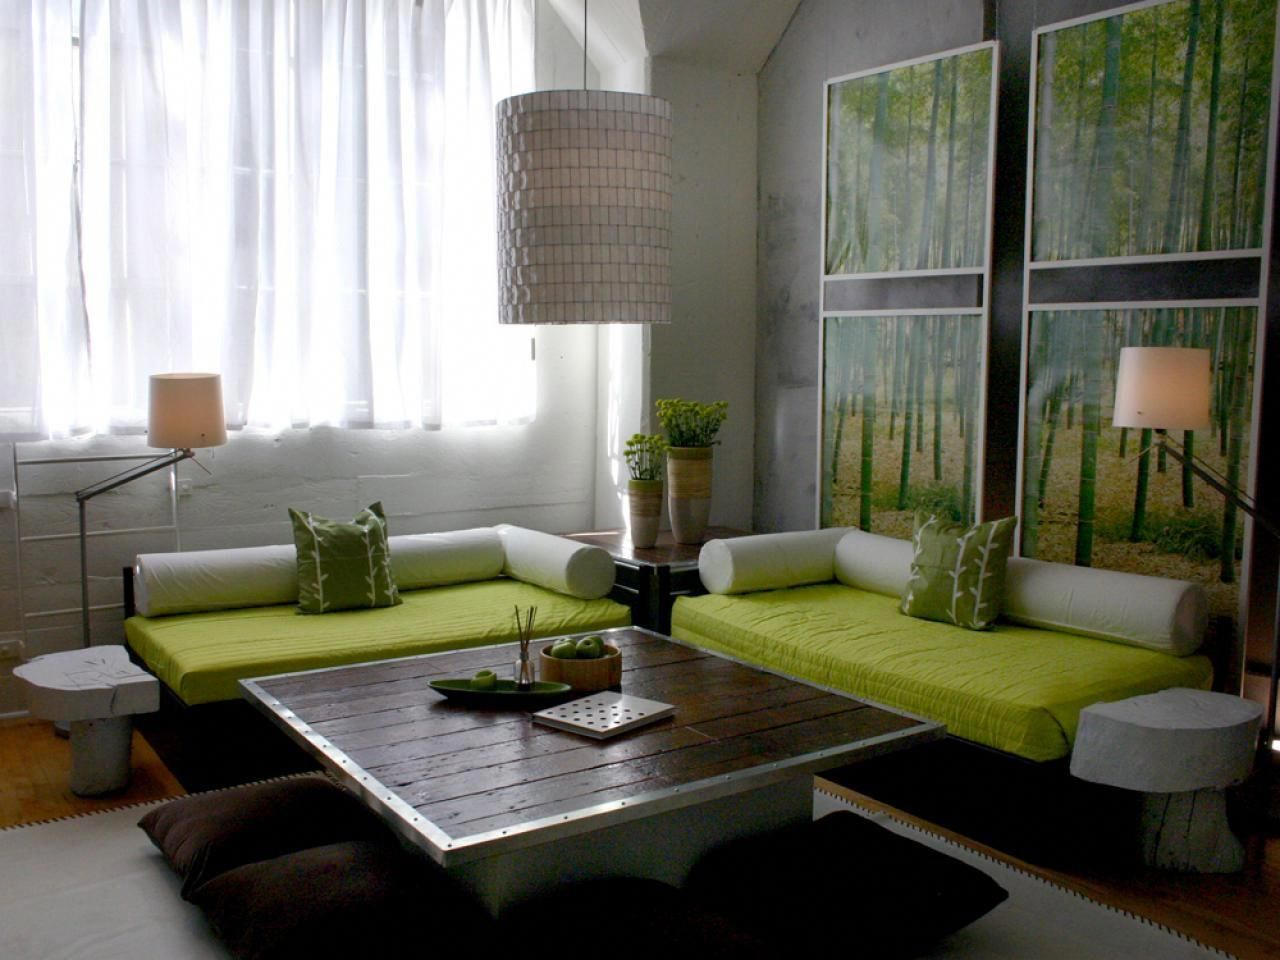 15 Budget Decorating Secrets Interior Design Styles And Color